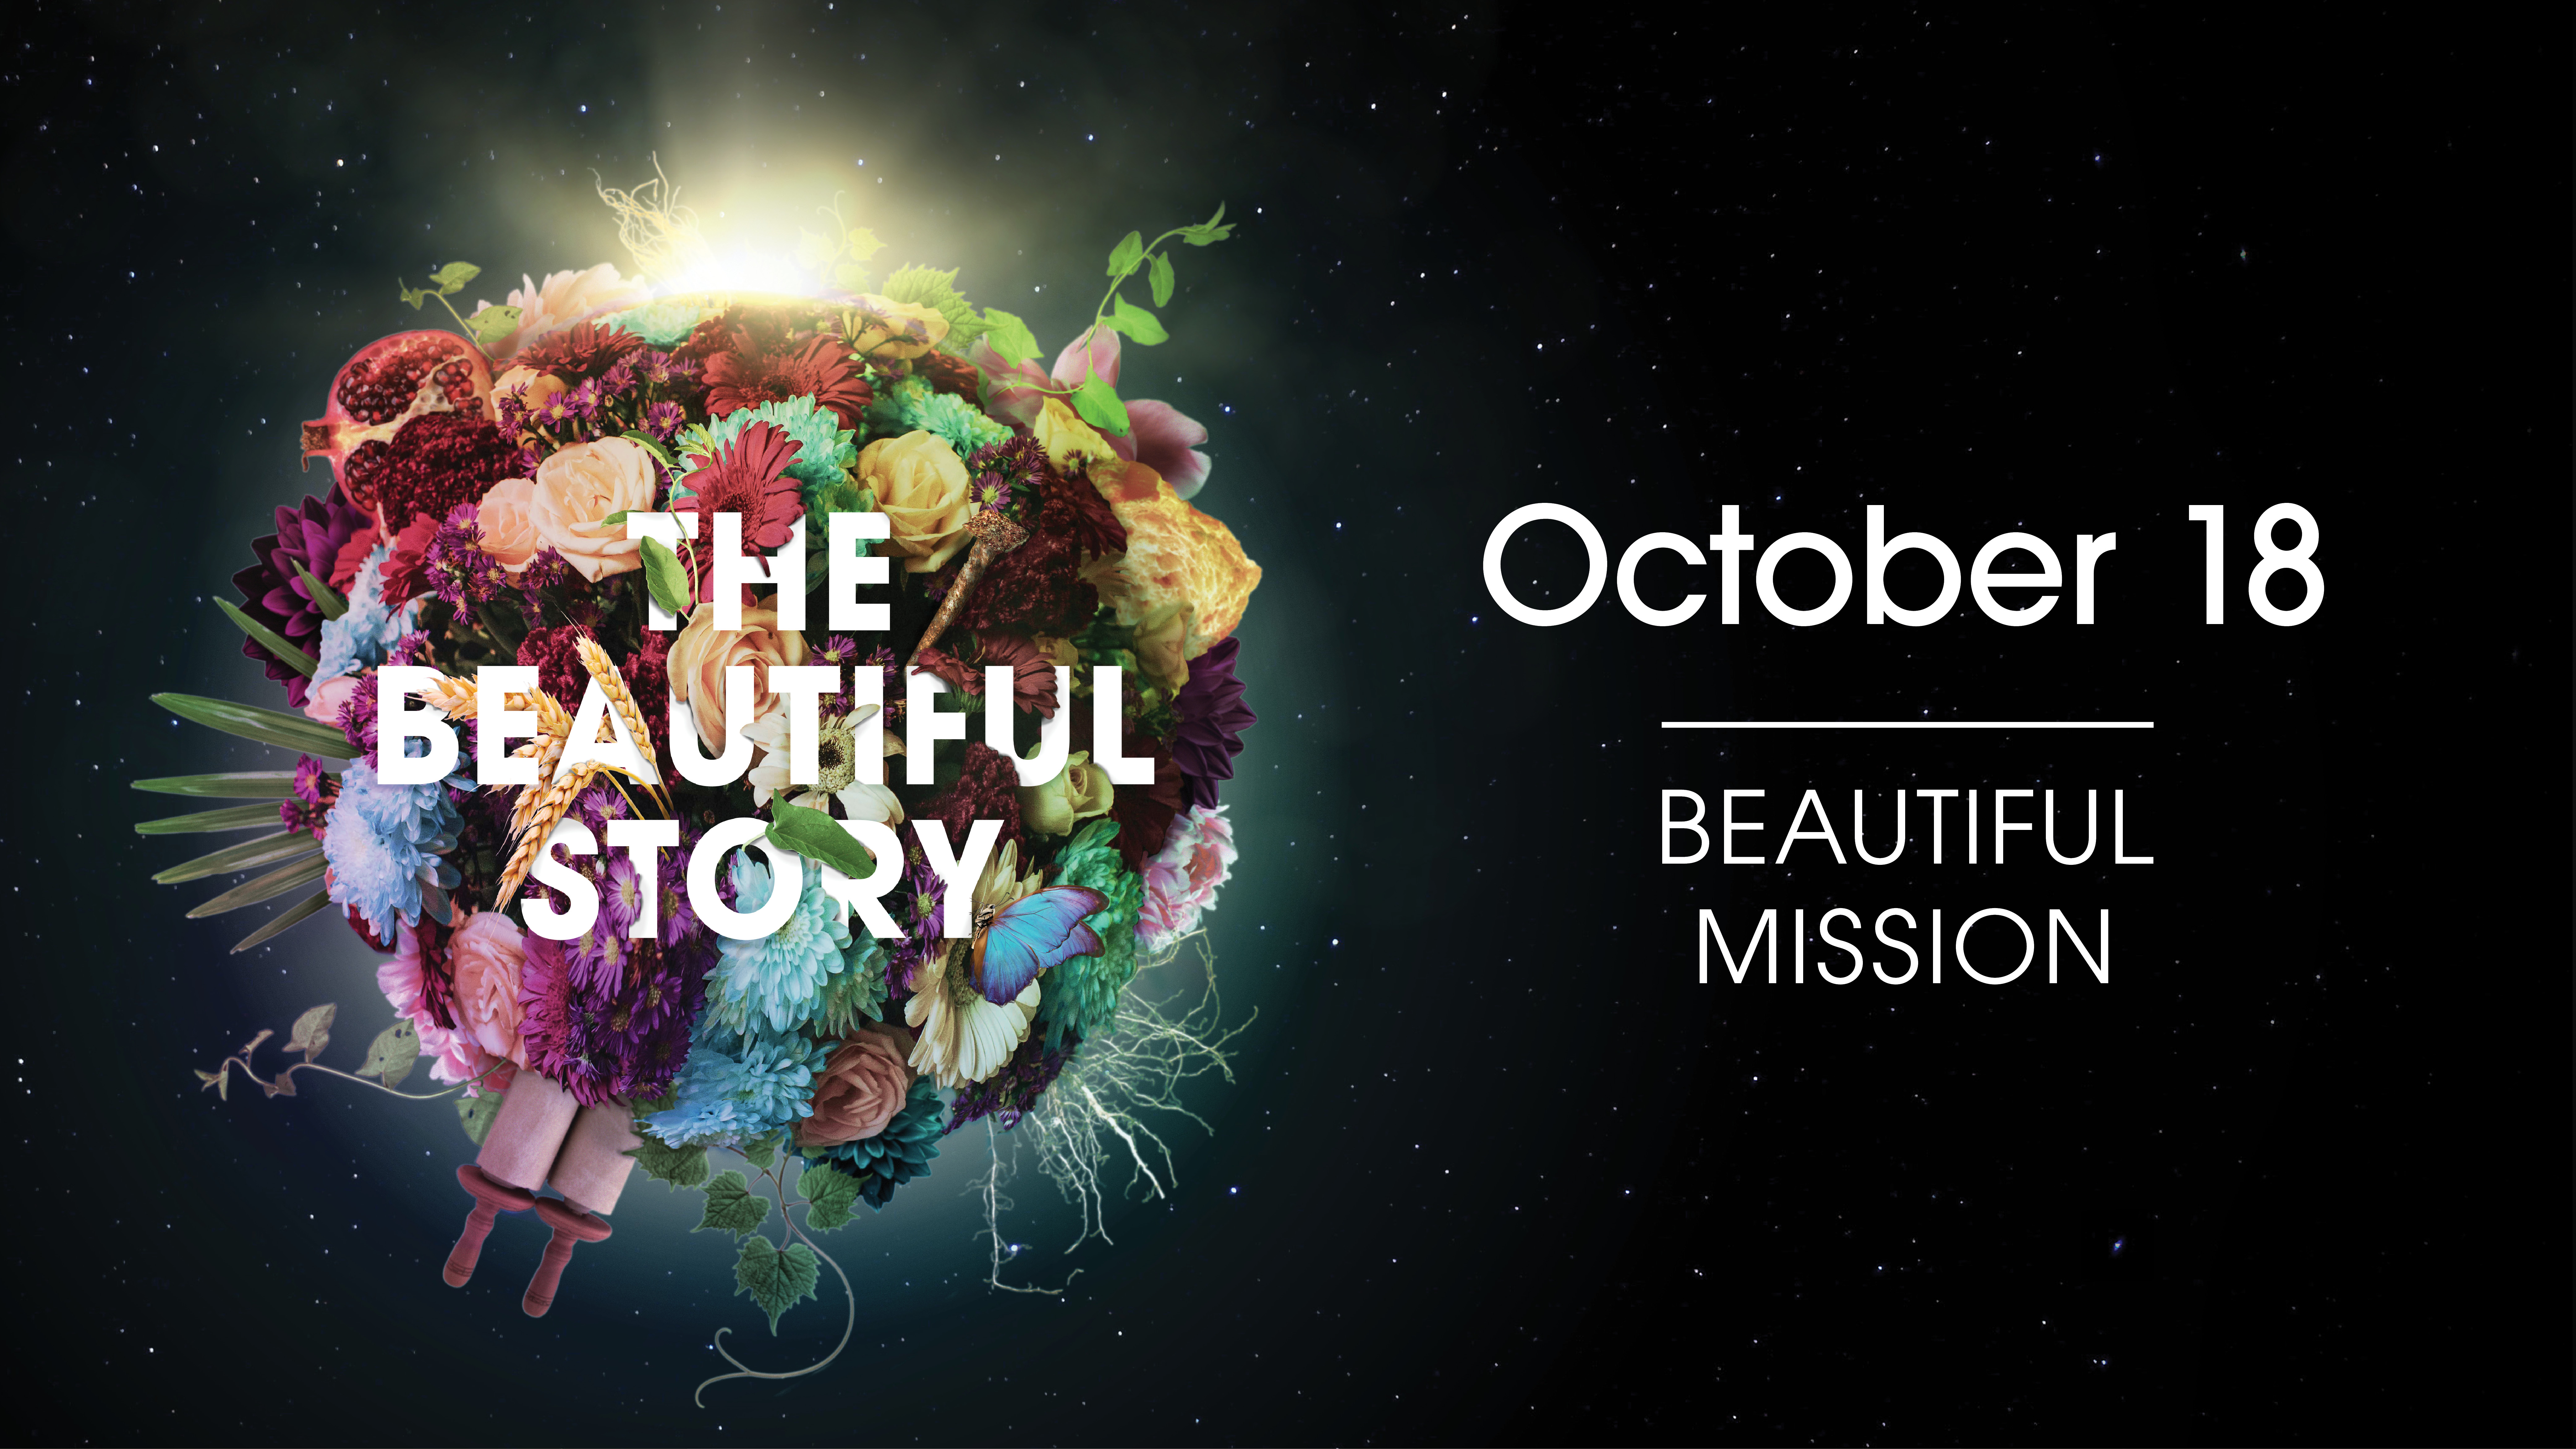 The Beautiful Story | Beautiful Mission | Michael Thornton